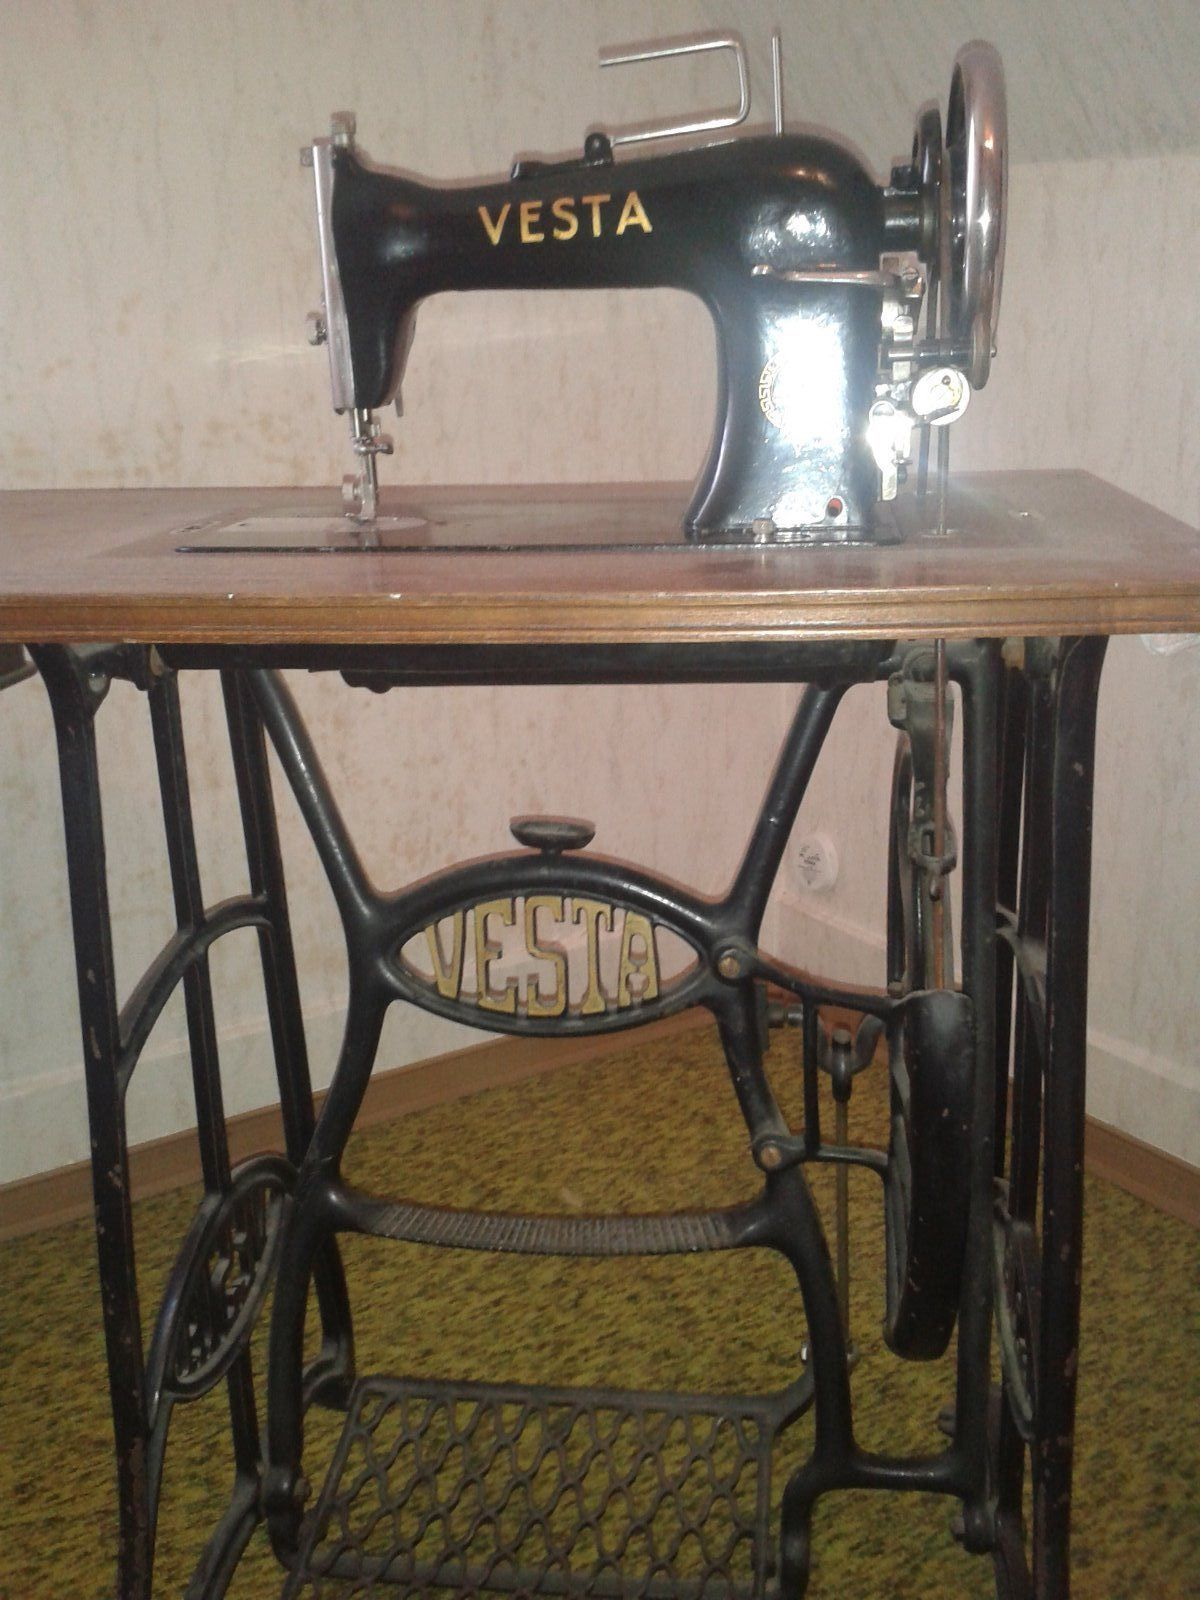 Vesta treadle sewing machine